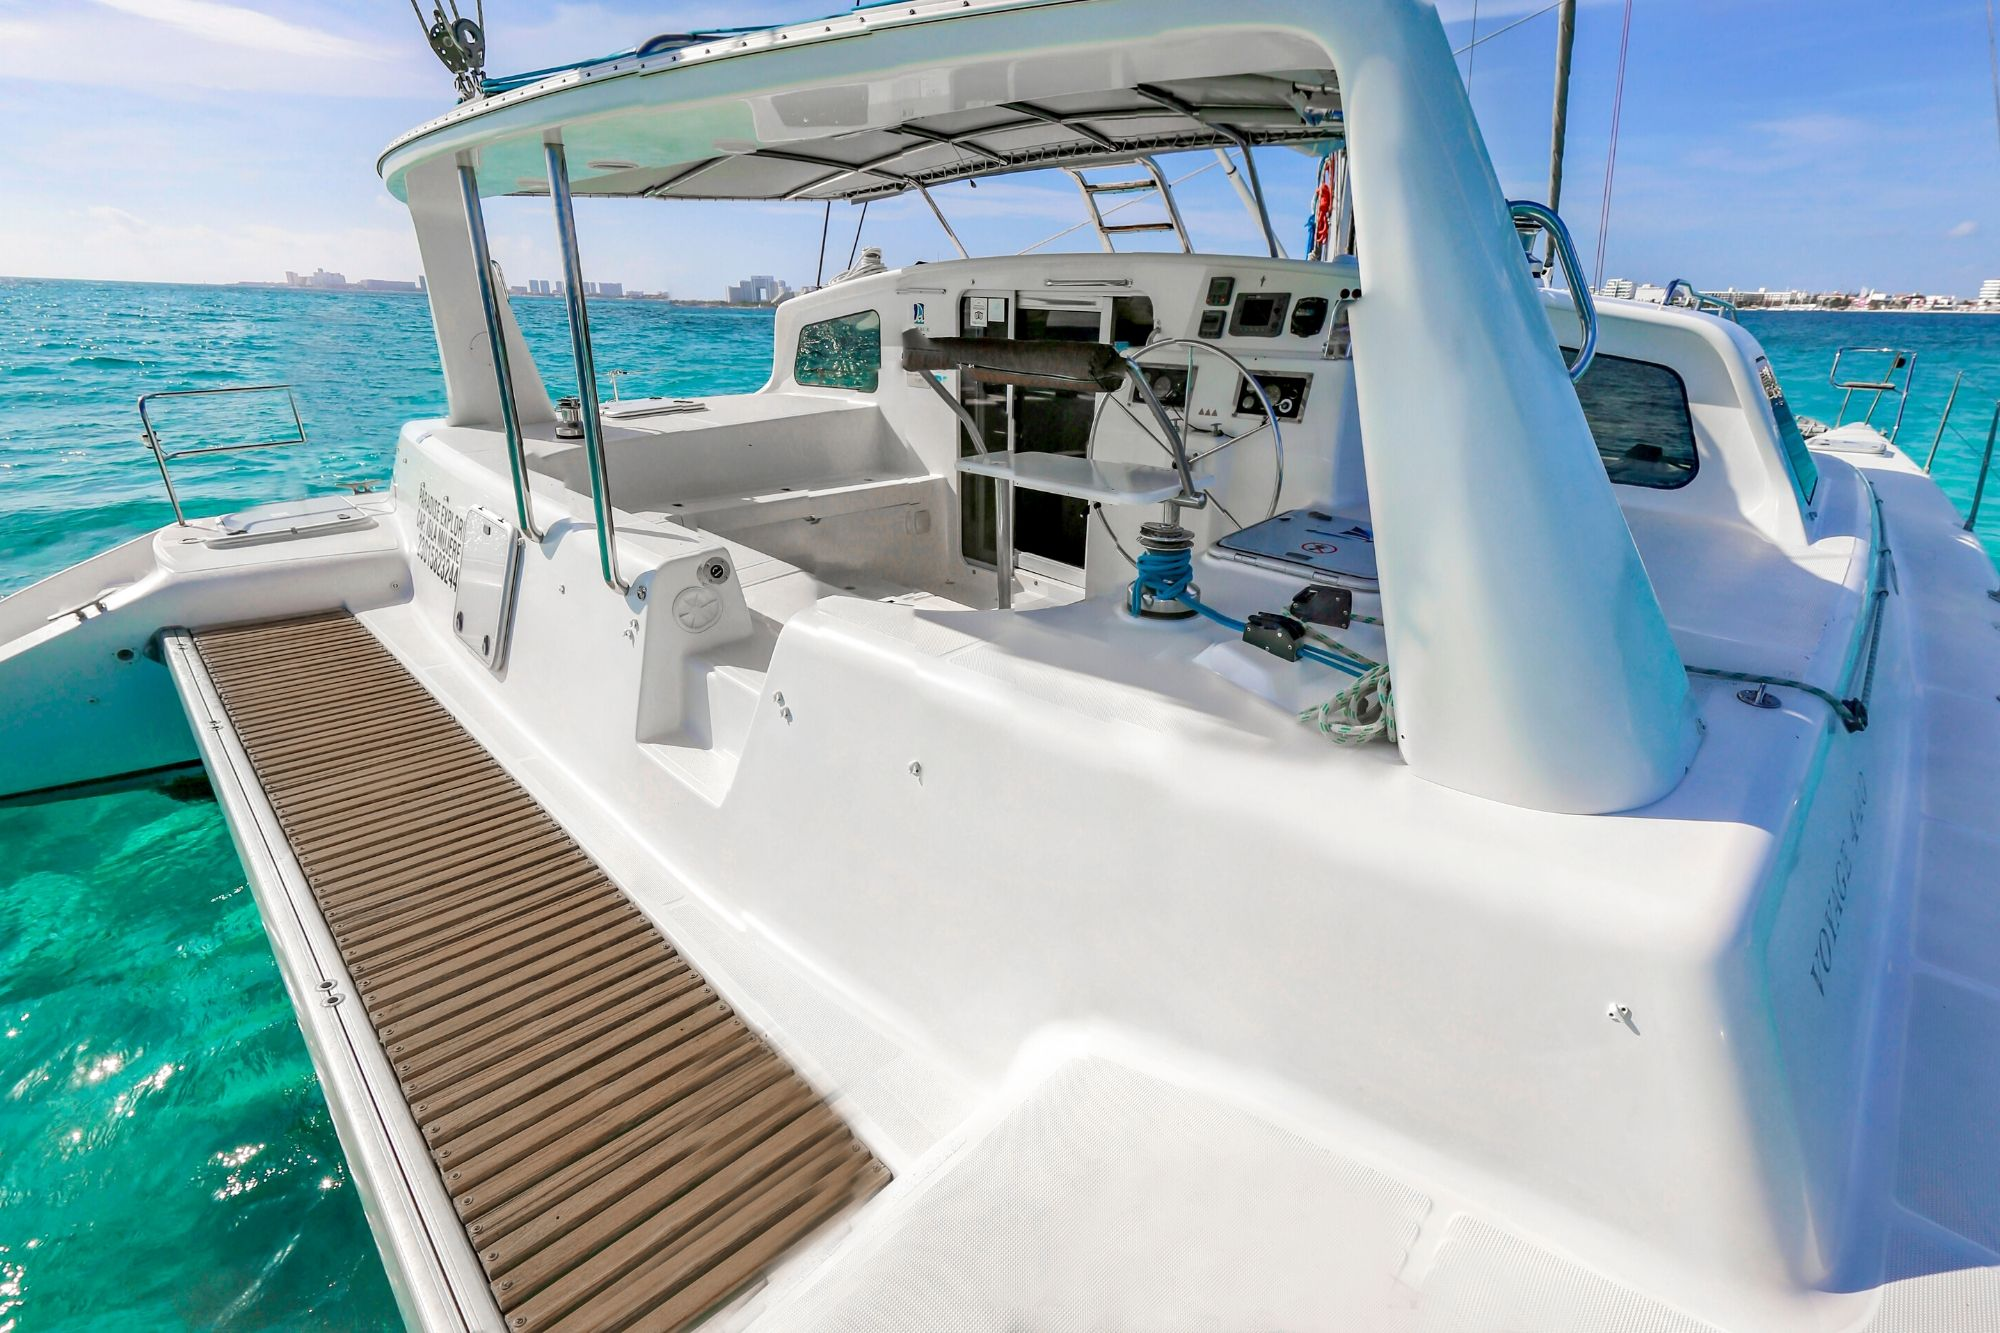 2 - Paradise explorer - Private Isla Mujeres catamaran tour - Cancun Sailing